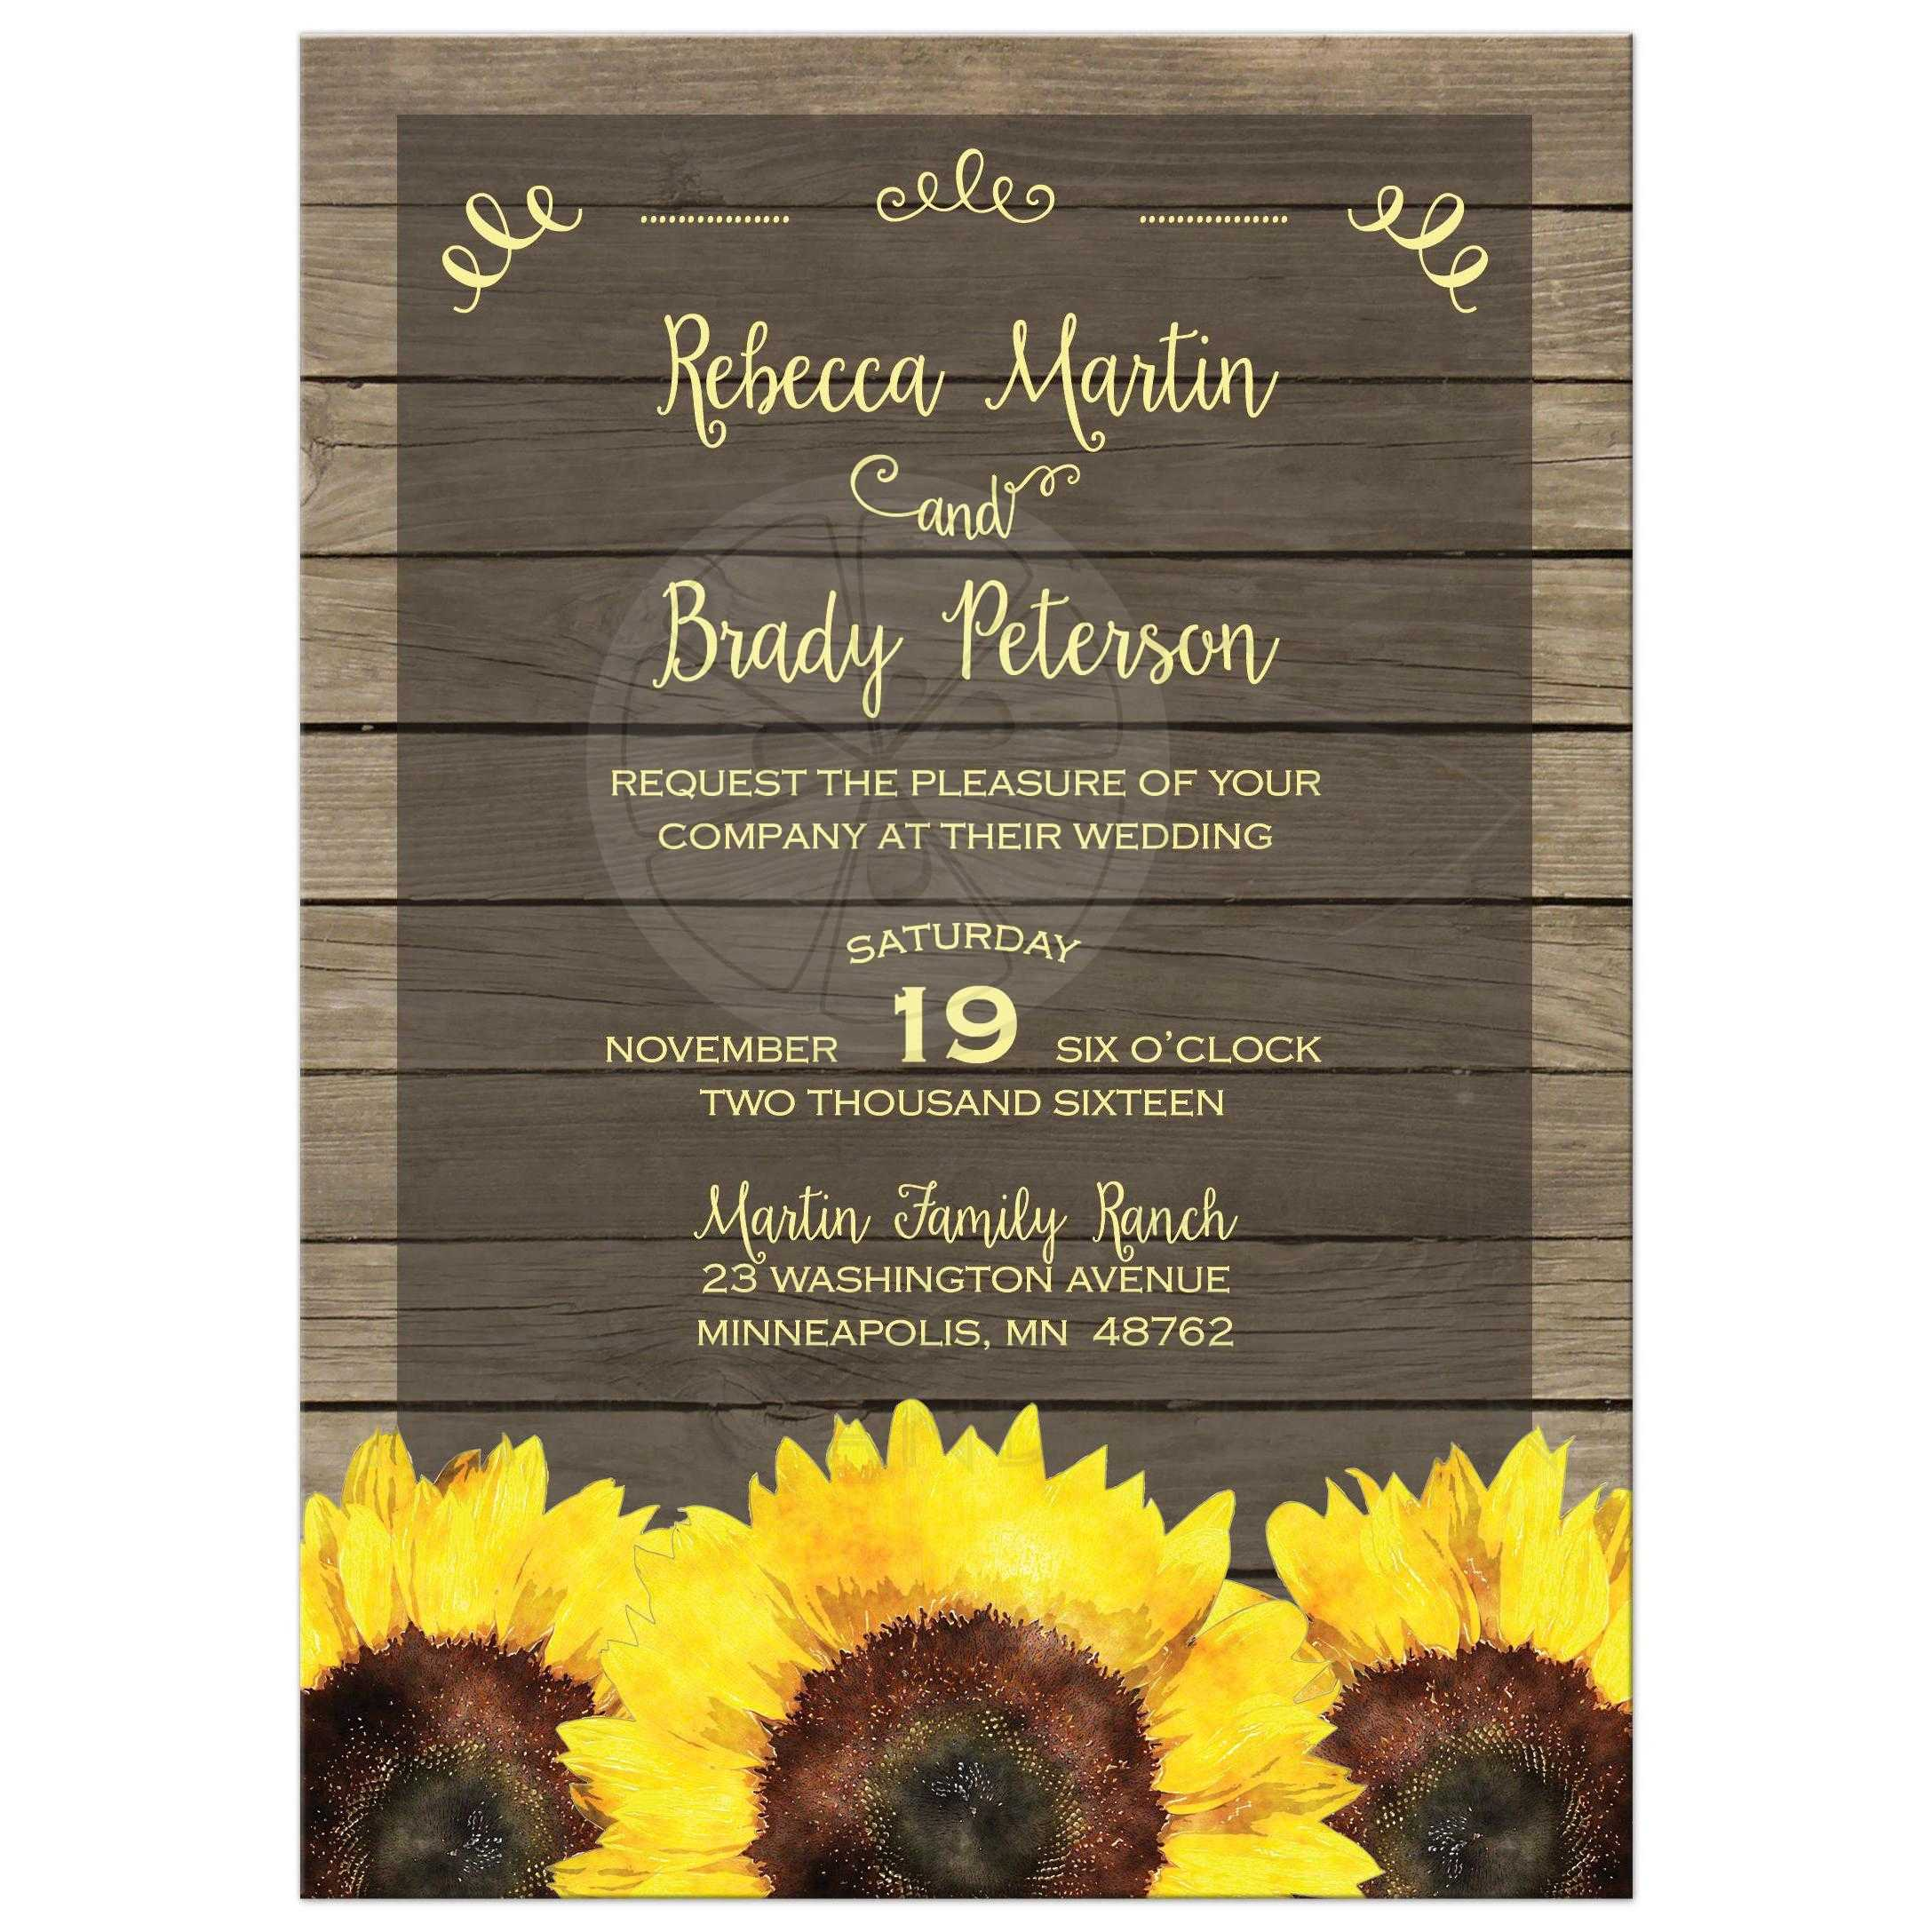 Wedding Invitation - Rustic Yellow and Brown Sunflowers on Wood Planks